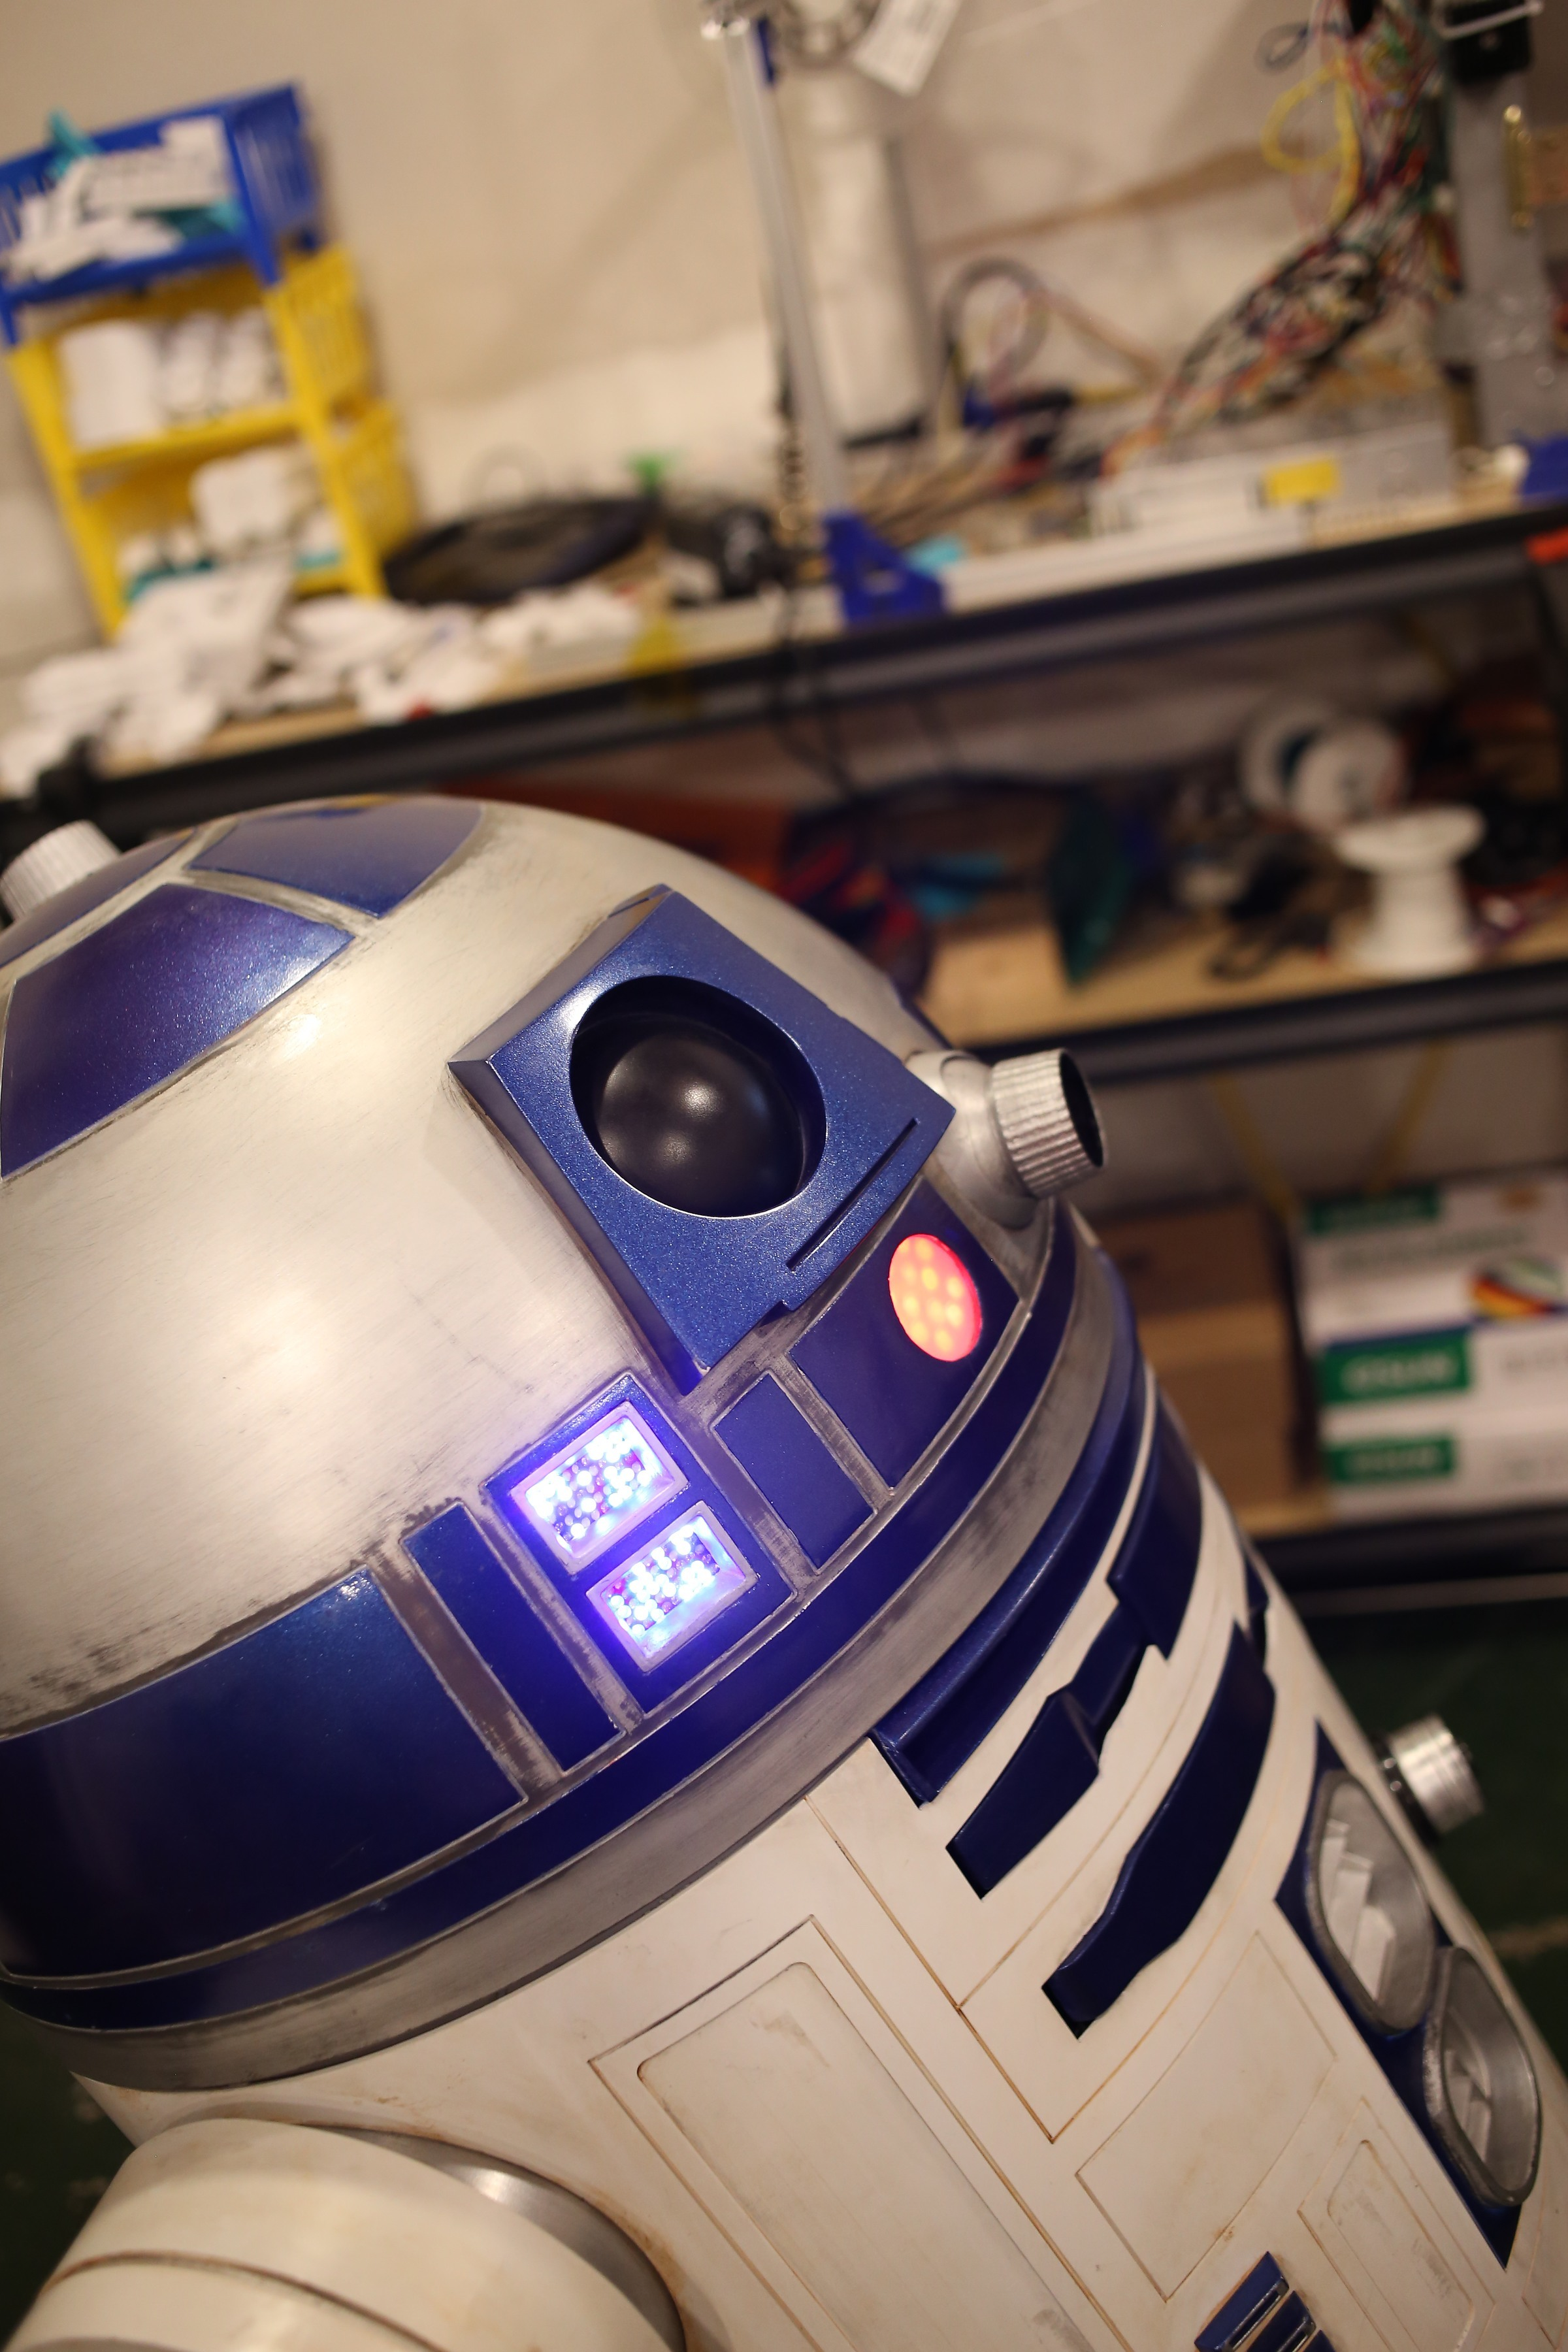 The Comprehensive Guide To Building A Realistic R2 D2 Replica Make Receiver Board Circuit Pcb Rc Quadcopter Spare Parts New Ebay This By Andrew Radovich Has Over 144 3d Printed Photo Courtesy Of Jennifer Micheletti From Roadside Morning Glory